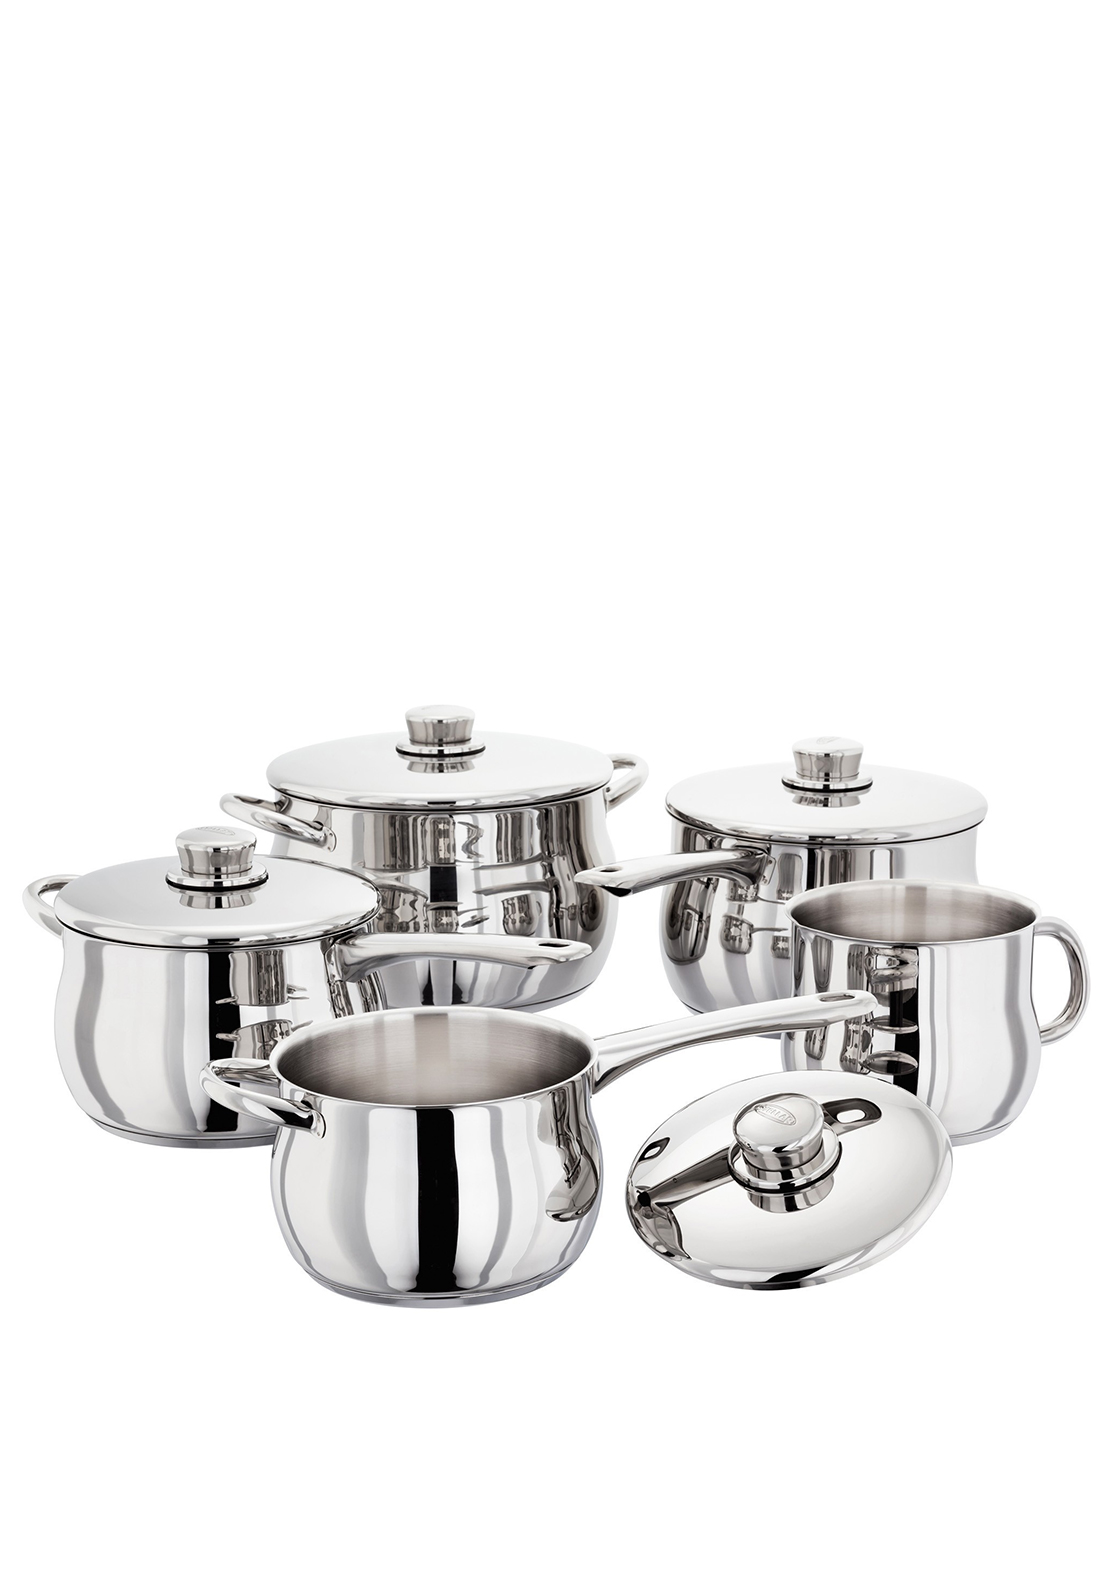 Stellar Deep 5 Piece Set, Silver